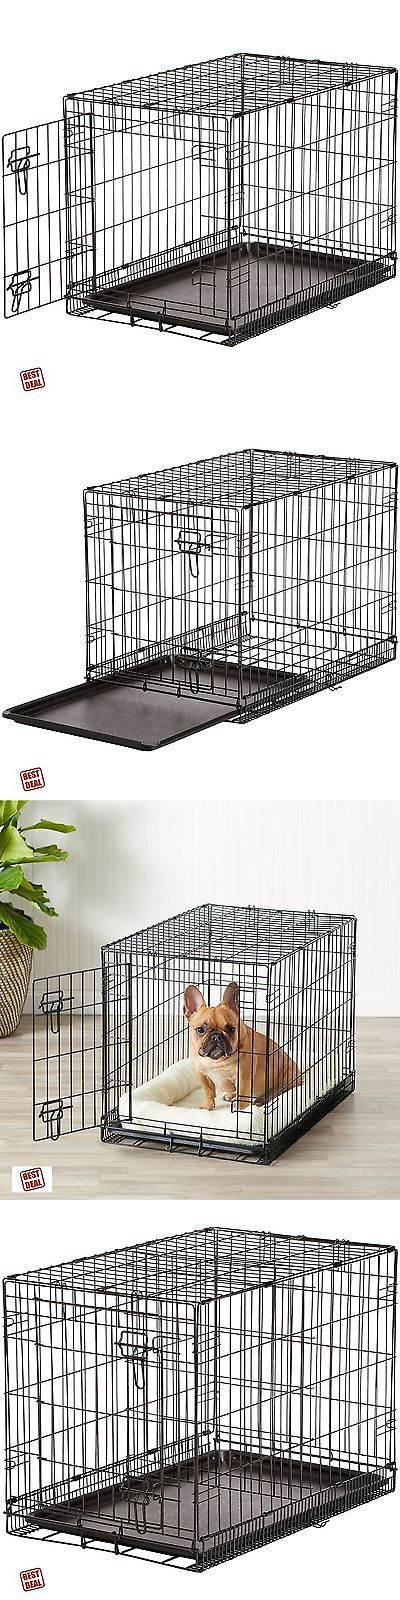 Cages and Crates 121851: Dog Kennel Crate Medium 30 Heavy Duty Metal Door Folding Pet Cage Portable New BUY IT NOW ONLY: $41.98